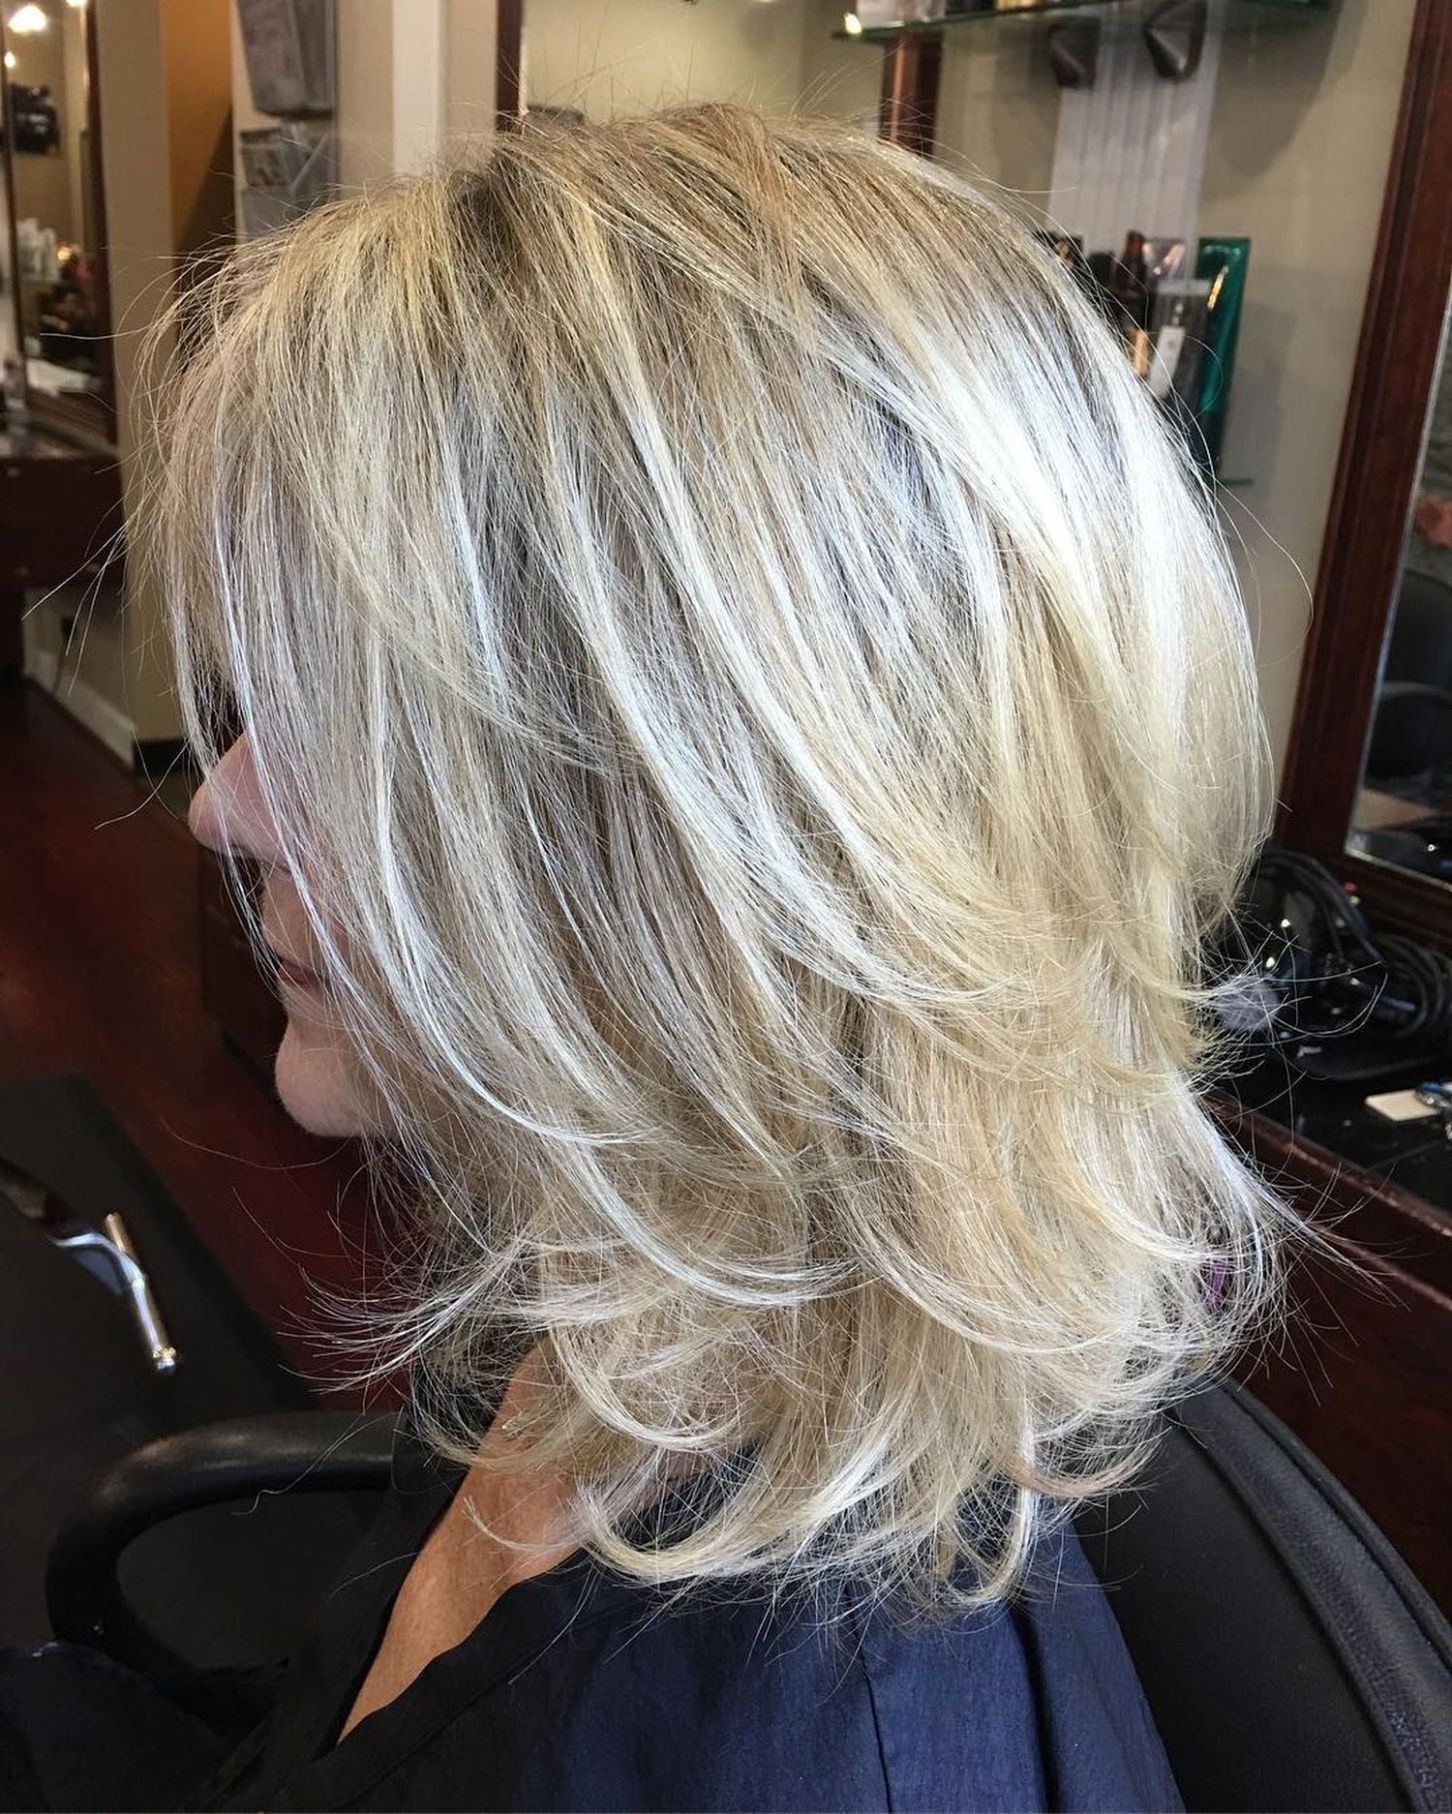 70 Perfect Medium Length Hairstyles For Thin Hair Medium Shag Haircuts Hair Styles Medium Length Hair Styles